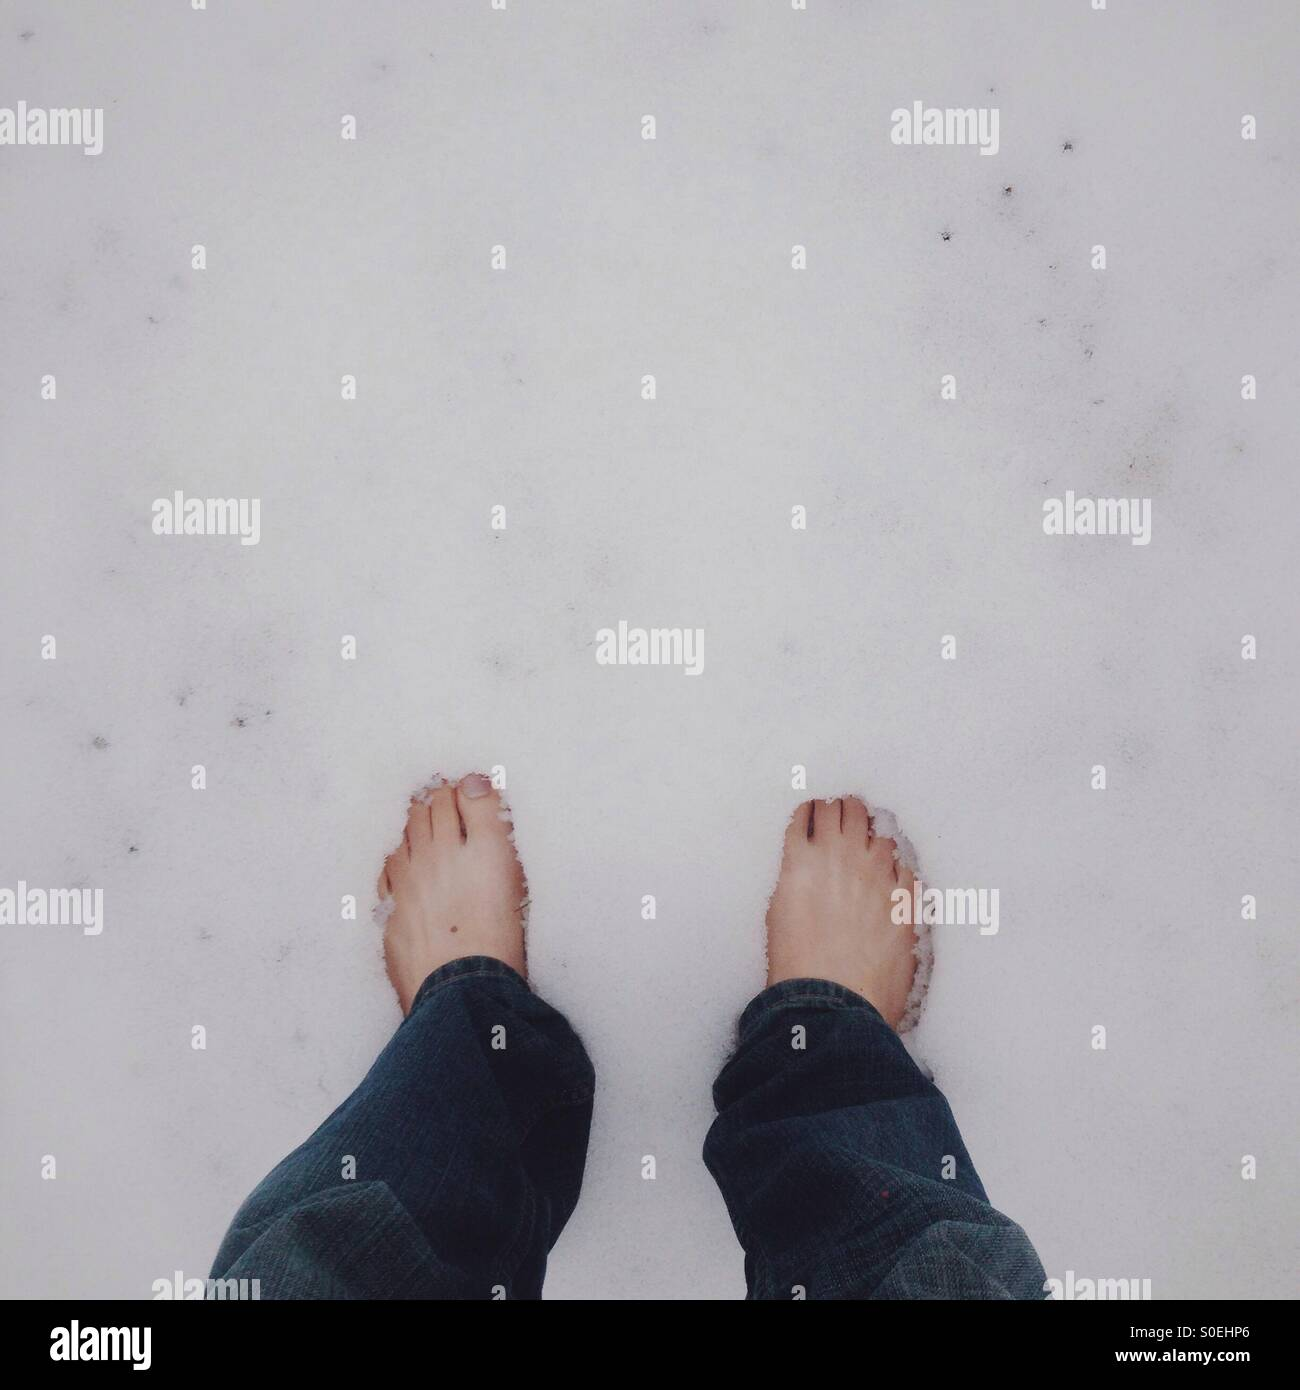 Bare feet in snow - Stock Image